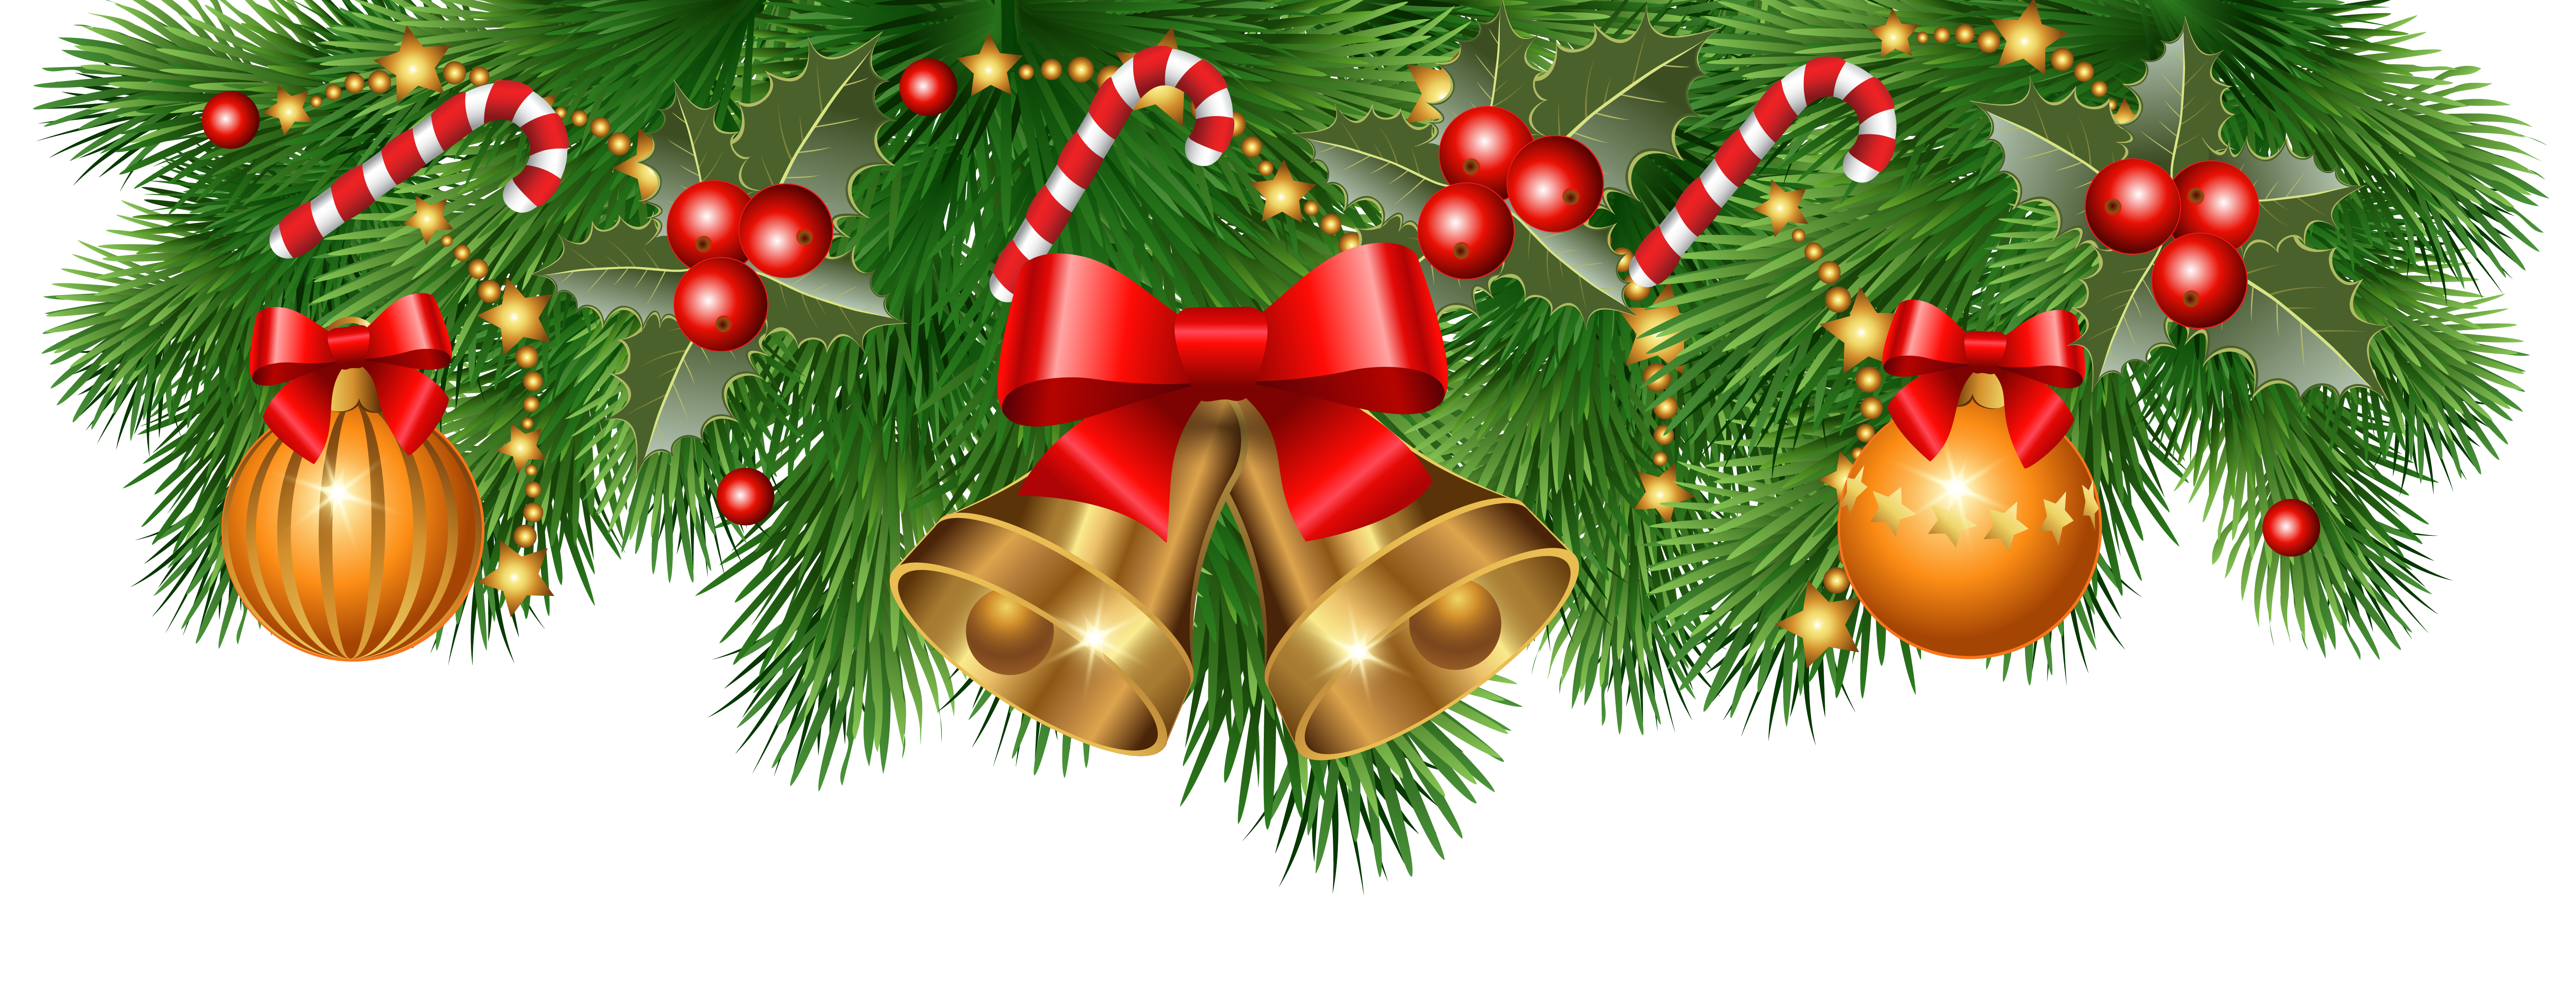 black and white stock Christmas borders clipart. Border decoration png image.